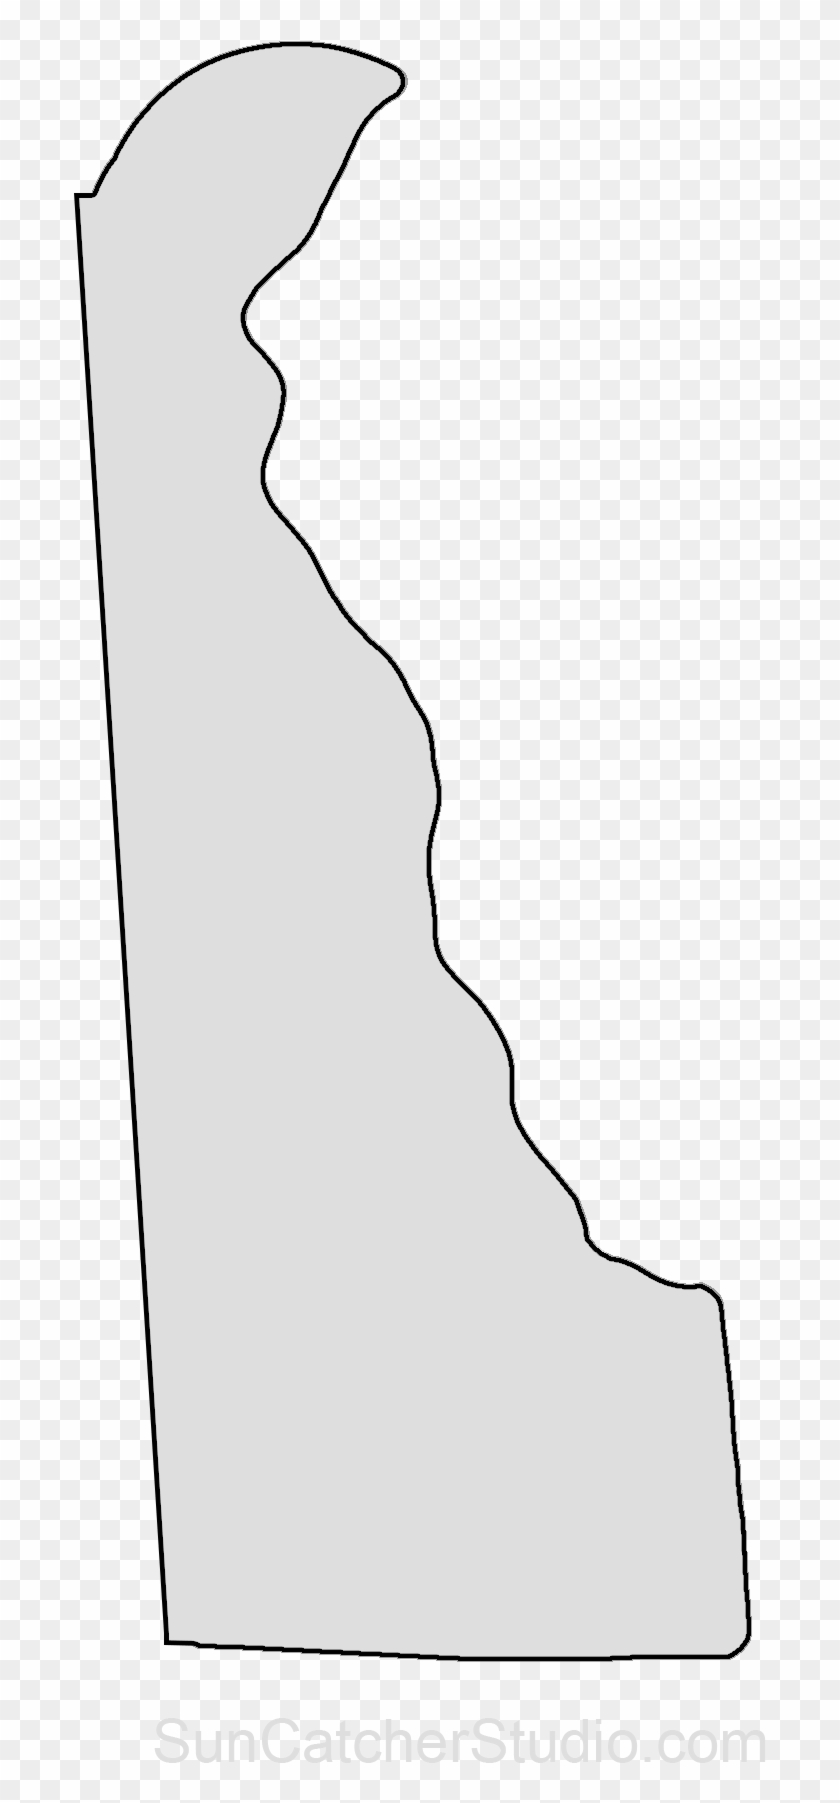 Map Outline State Outline Delaware Map State Pattern Delaware State Outline Png Transparent Png 924x1800 2550893 Pngfind